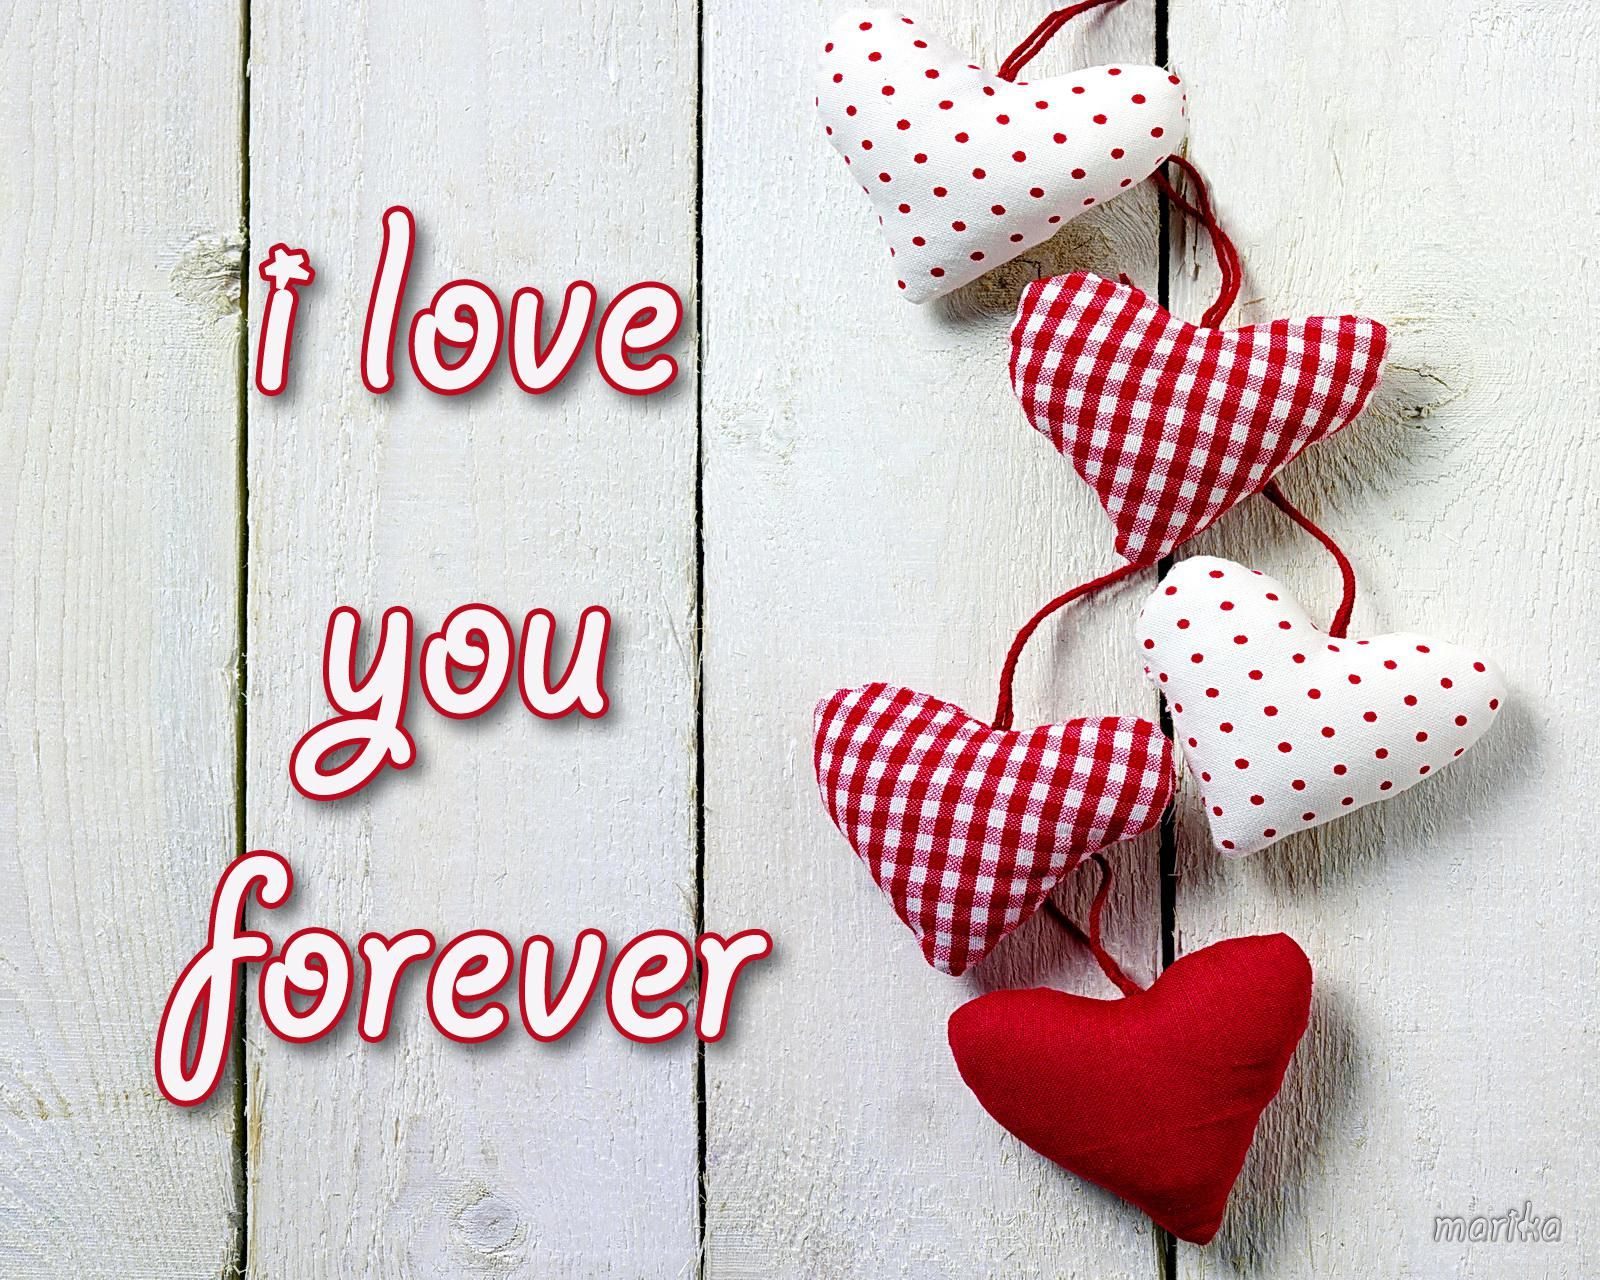 65 Cute Valentines Wallpapers Collection Free I Love You Wallpapers 38 Wallpapers Hd Wallpapers